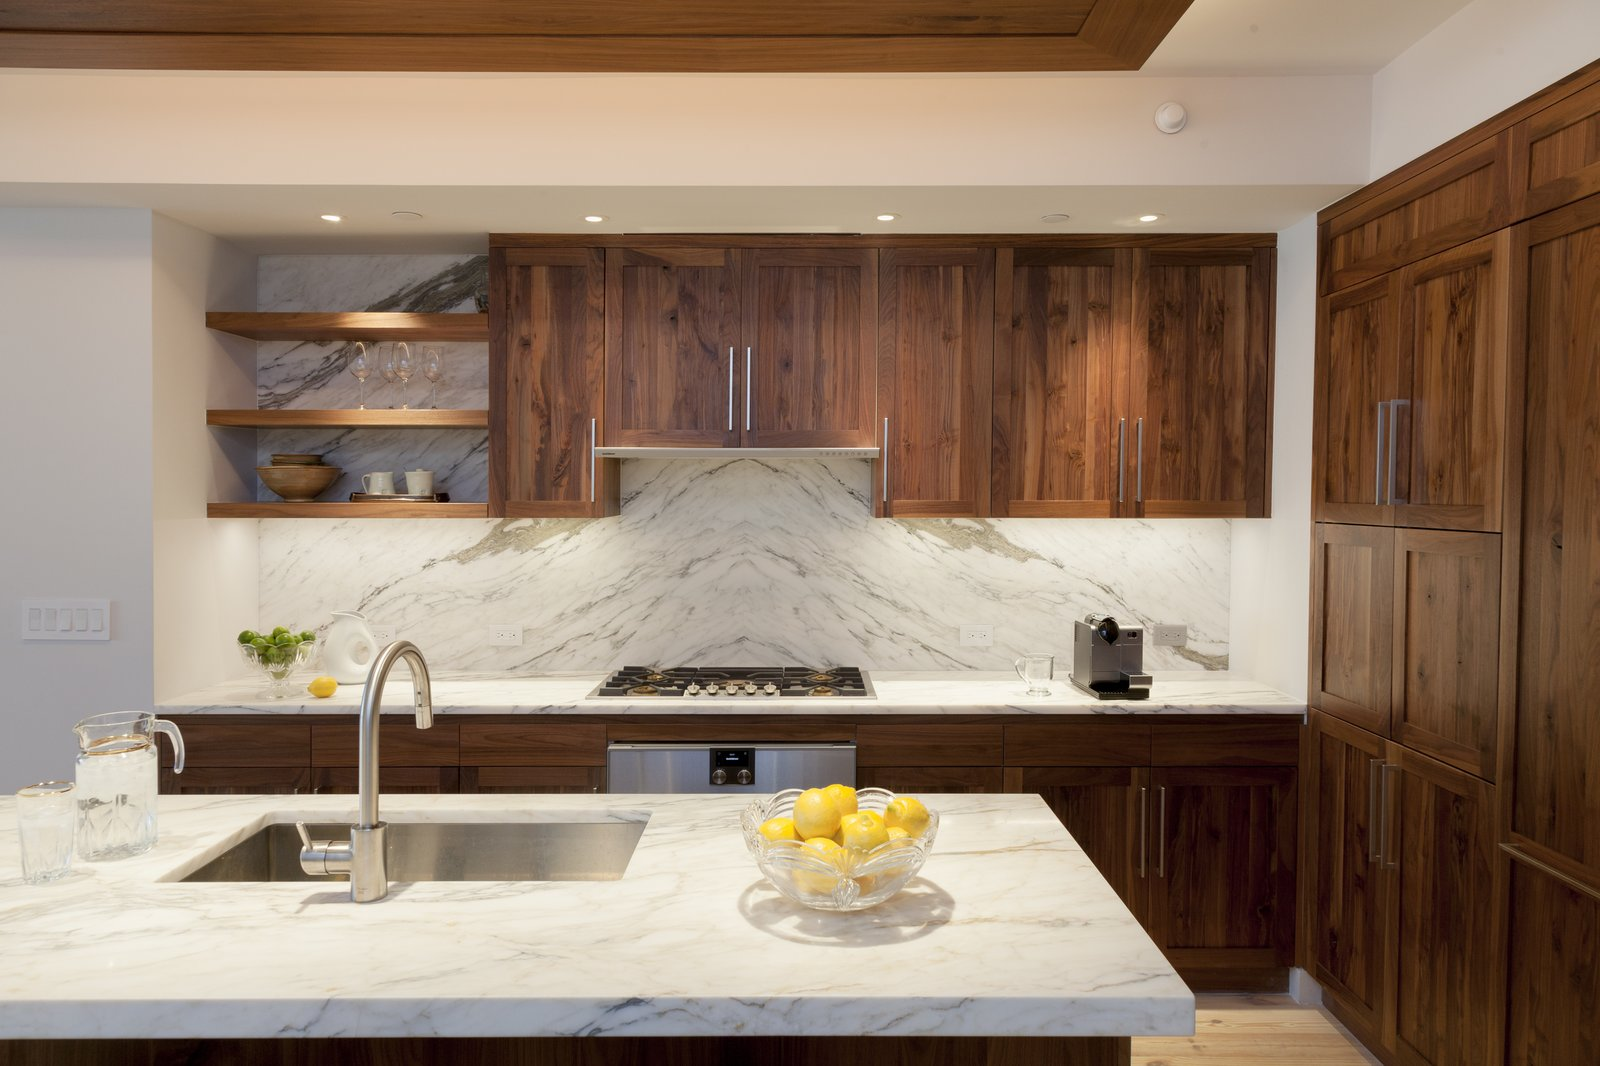 Kitchen, Marble, Wood, Stone Slab, Ceiling, Pendant, Light Hardwood, Accent, Recessed, Refrigerator, Wall Oven, Cooktops, Range, Range Hood, Wine Cooler, Ice Maker, Dishwasher, Microwave, and Undermount Walnut and book-matched  Calcutta kitchen  Kitchen Microwave Pendant Wall Oven Marble Wood Stone Slab Photos from Pierhouse At Brooklyn Bridge Park Condo